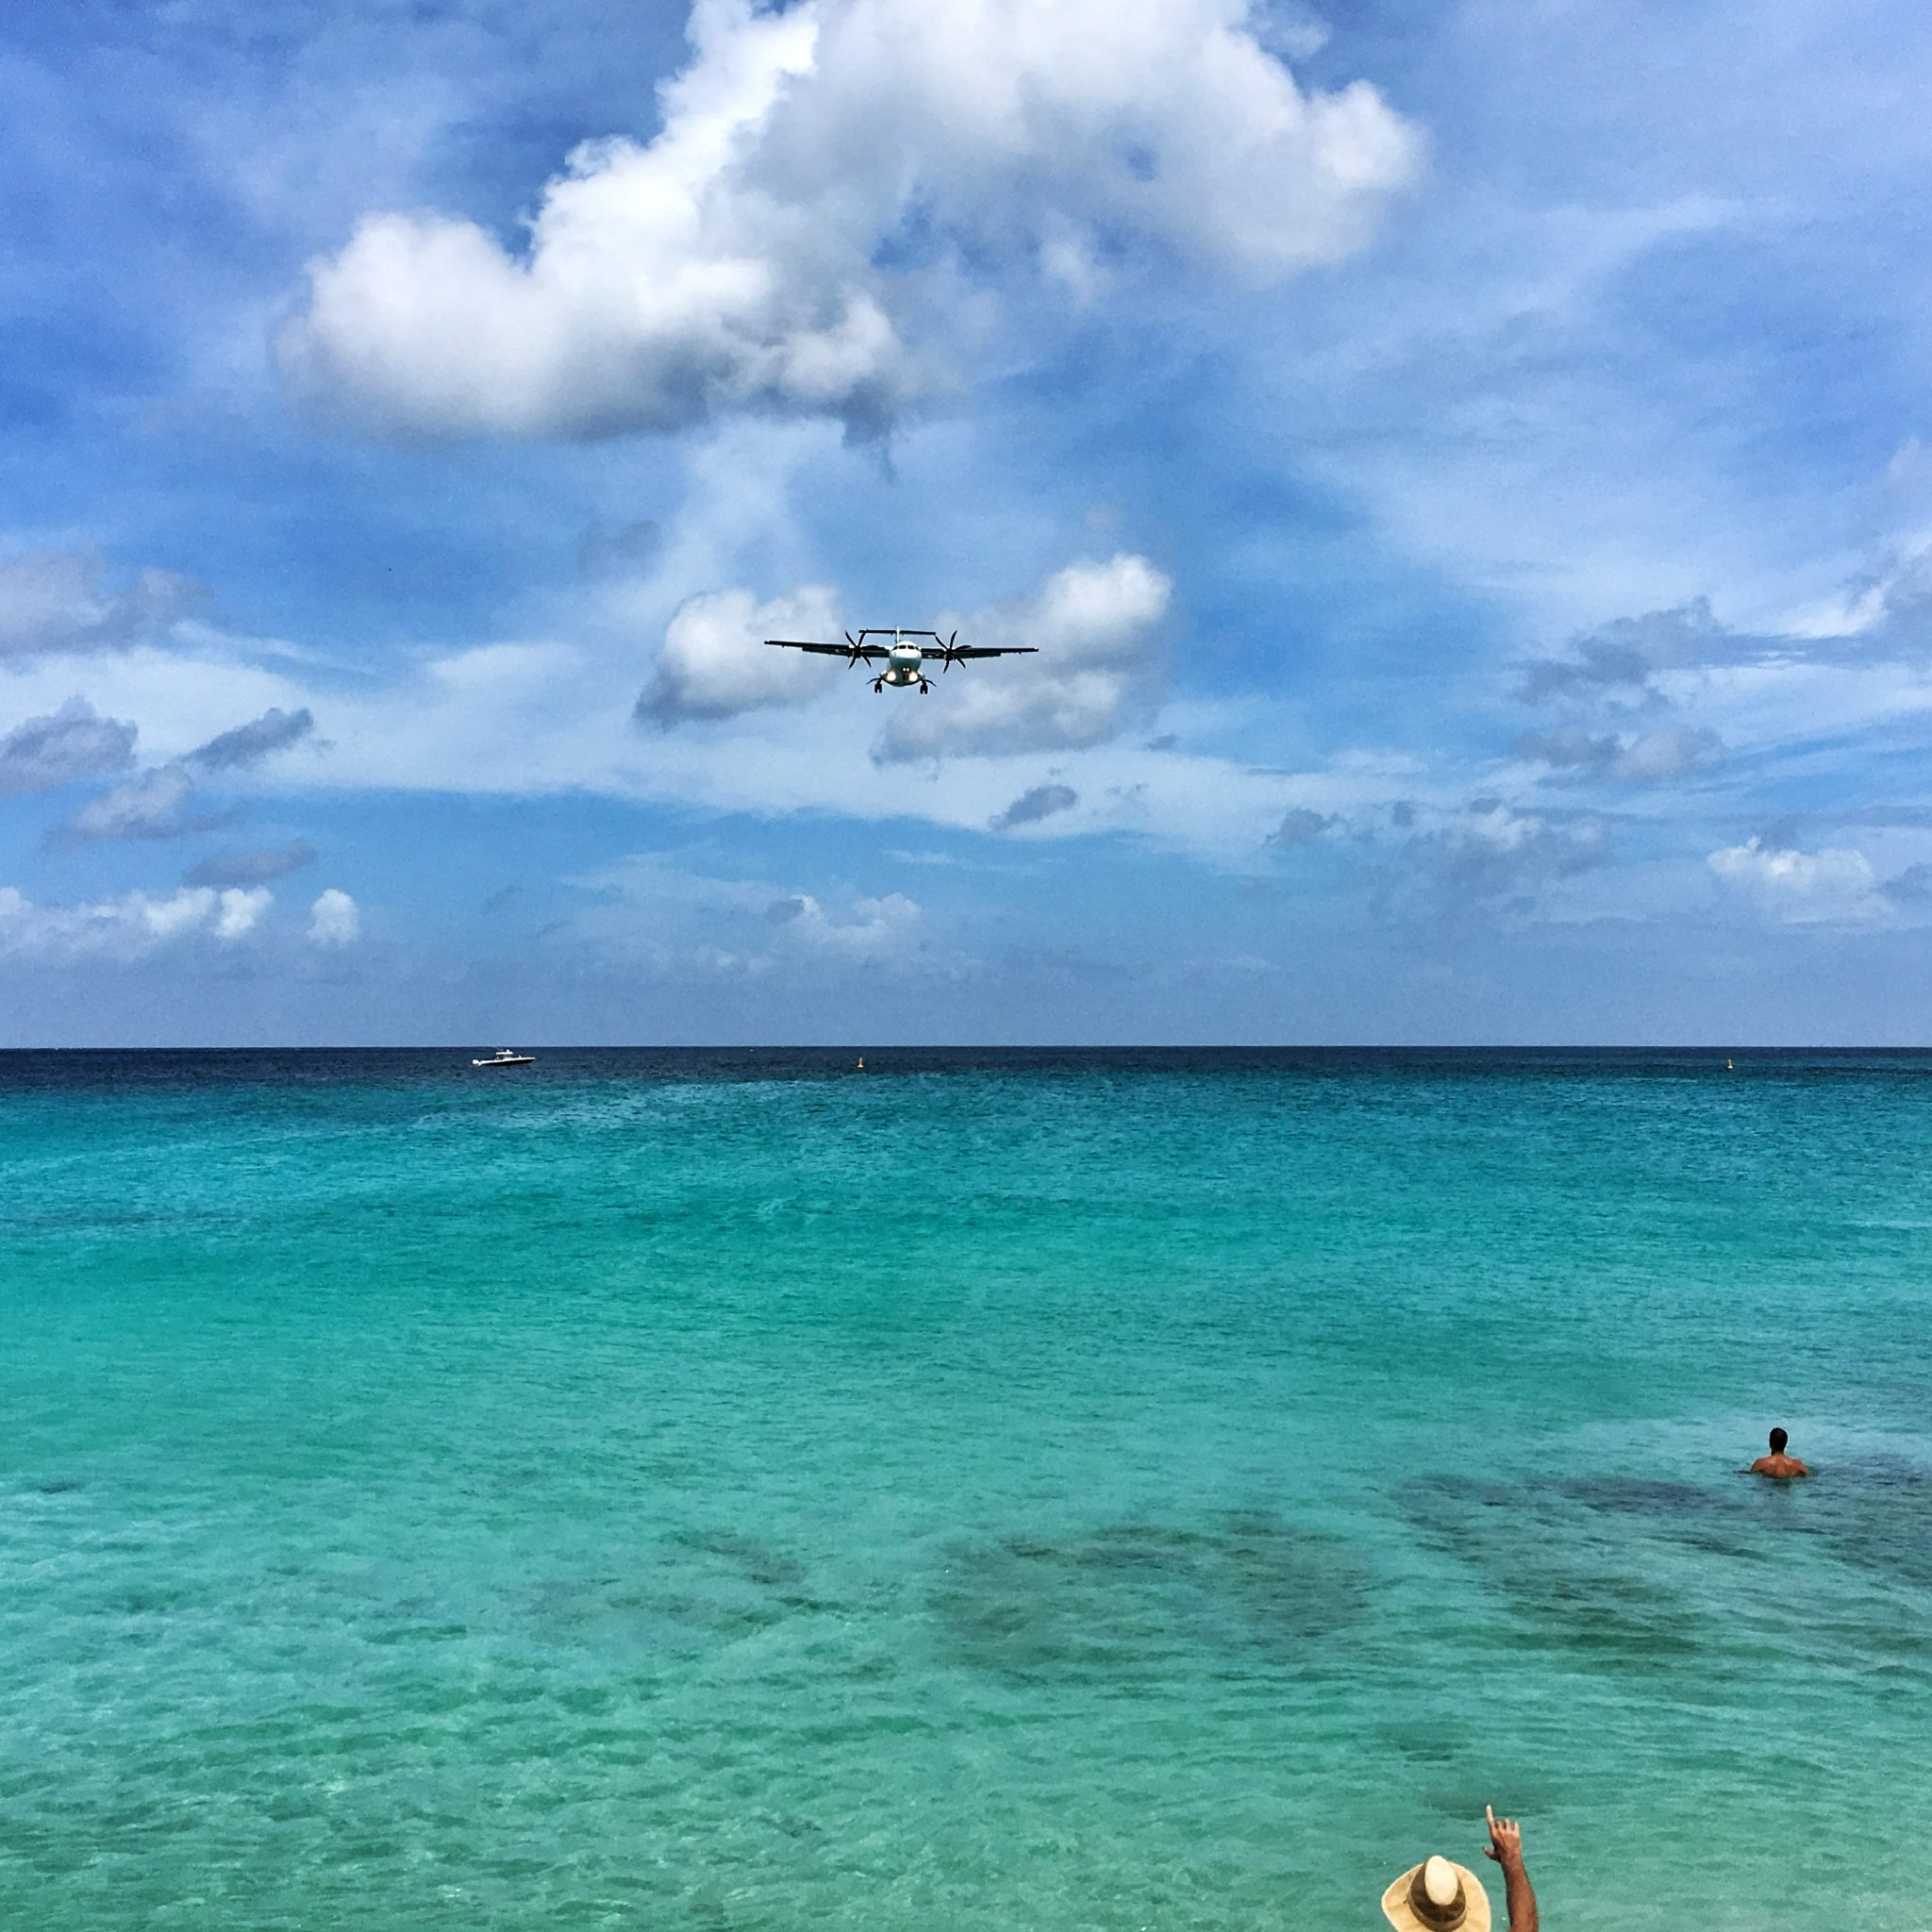 snapseed tutorial, smartphone editing with snapseed | Photo: Maho Beach St Maarten - AFTER EDITING! | Copyright Karin van Mierlo | Photography Playground